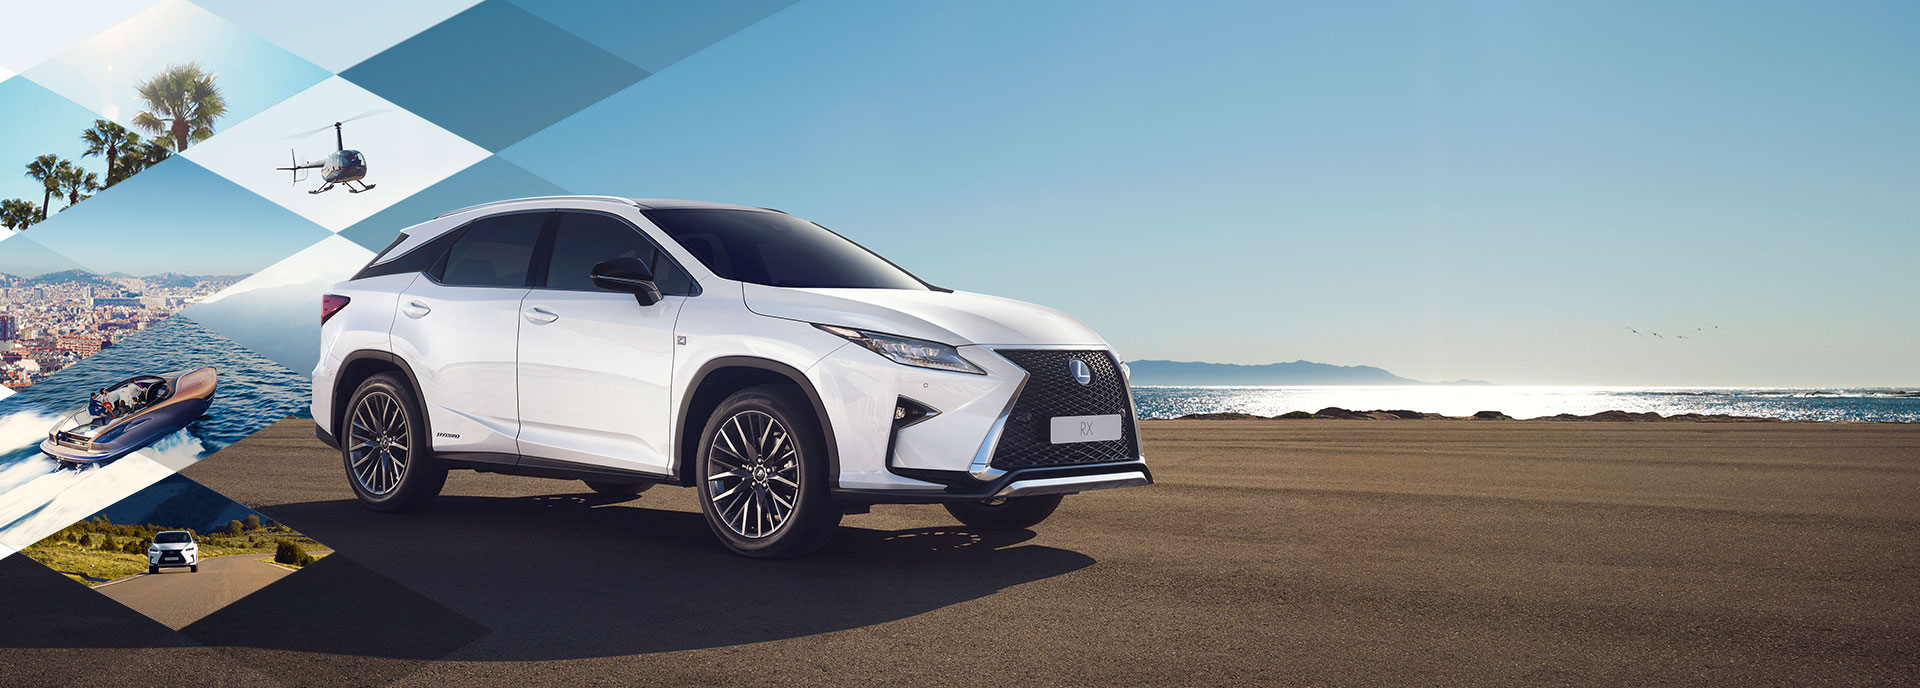 2017 Lexus RX 450h TVC Home Hero